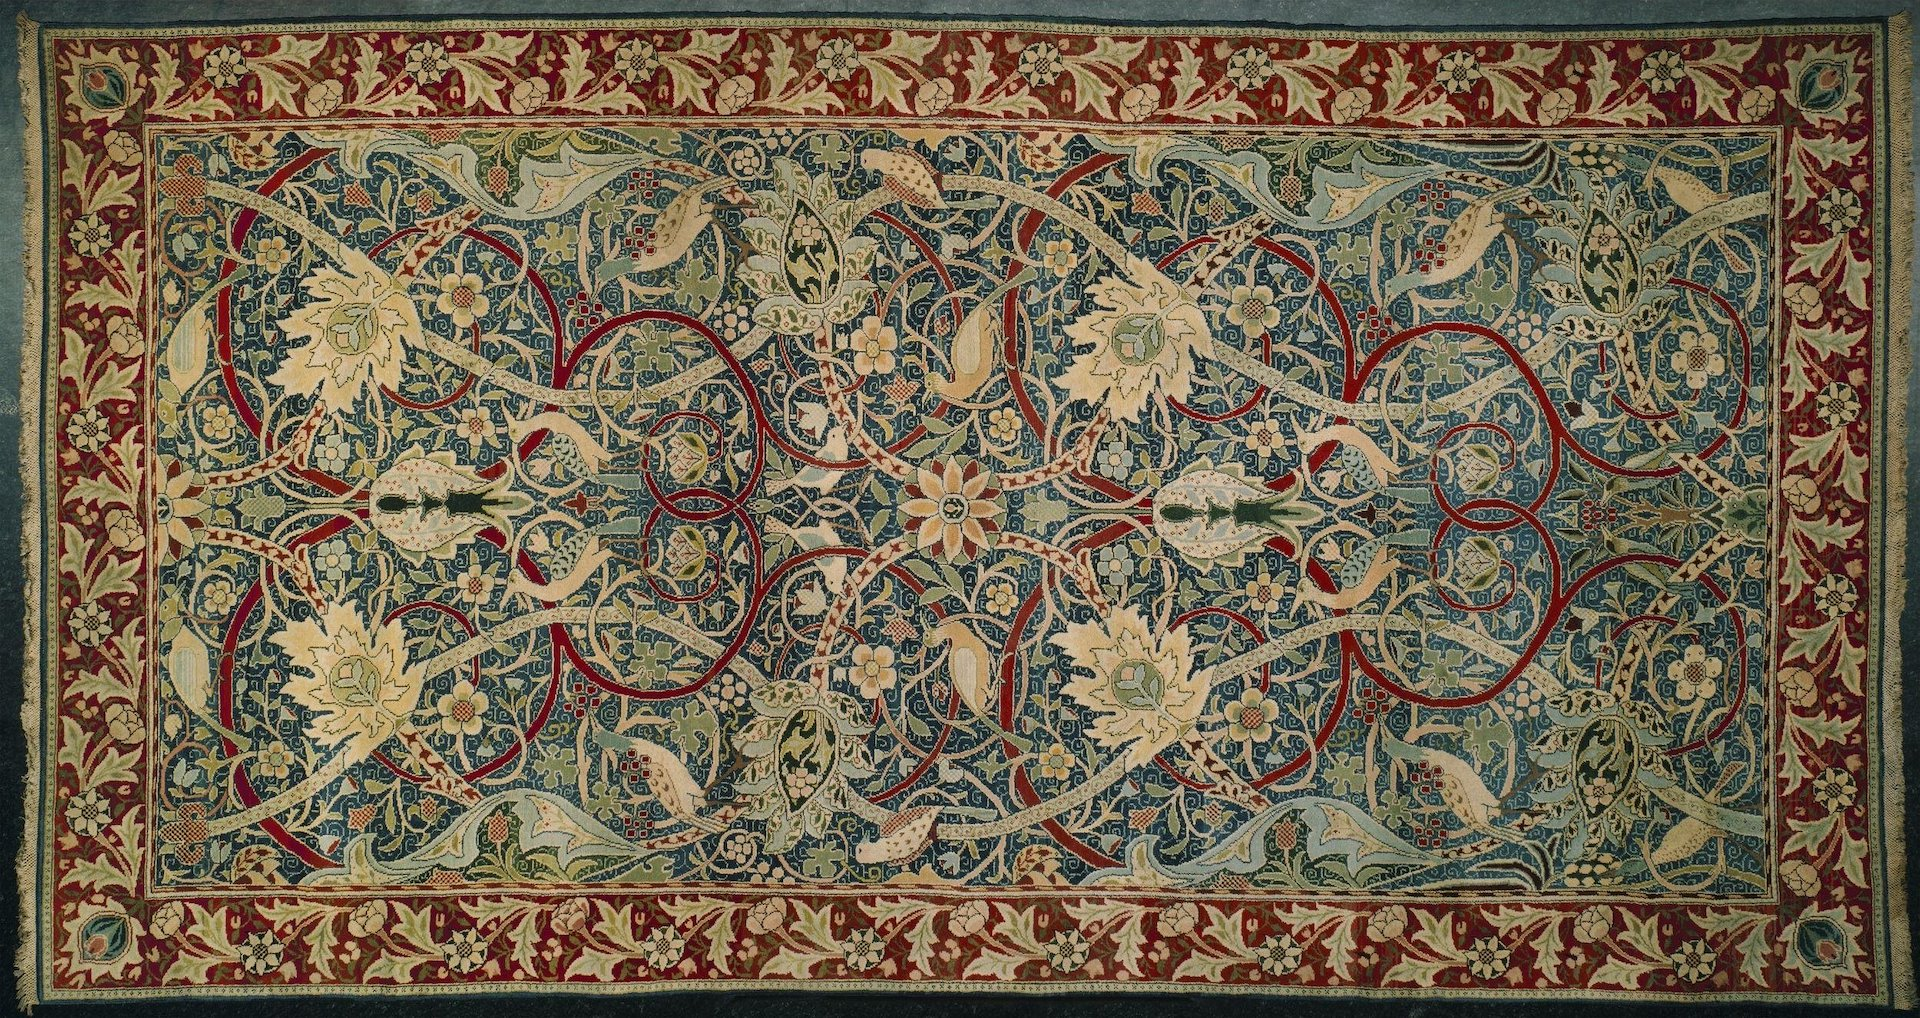 Bullerswood Carpet by William Morris and John Henry Dearle, 1889. Photo © the Victoria & Albert Museum